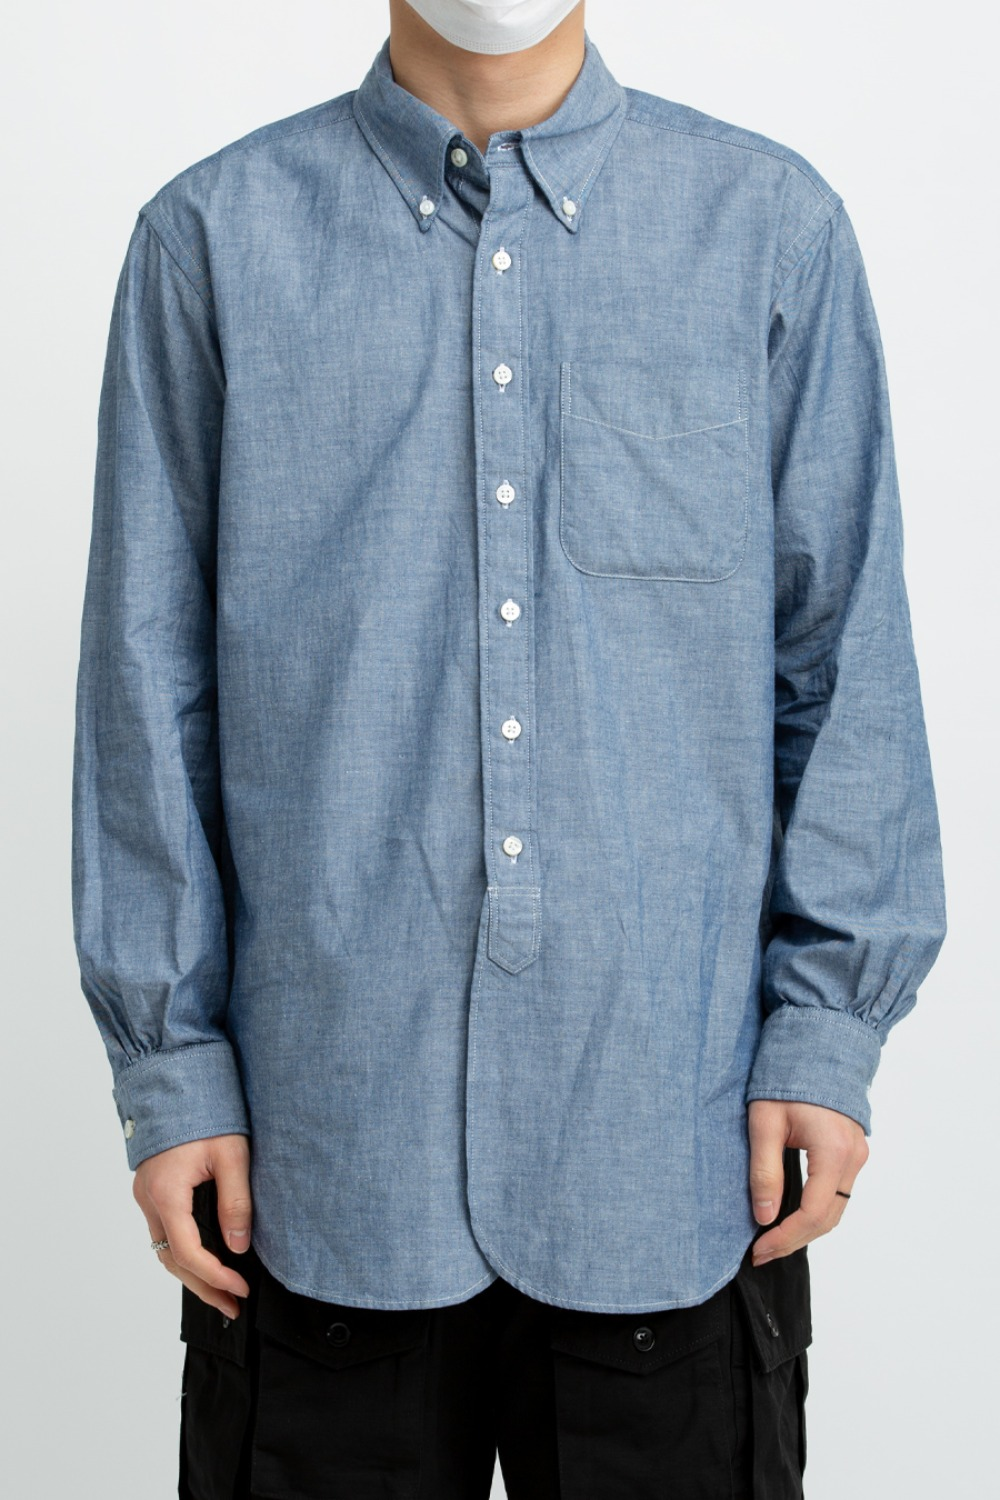 19 CENTURY BD SHIRT BLUE COTTON CHAMBRAY